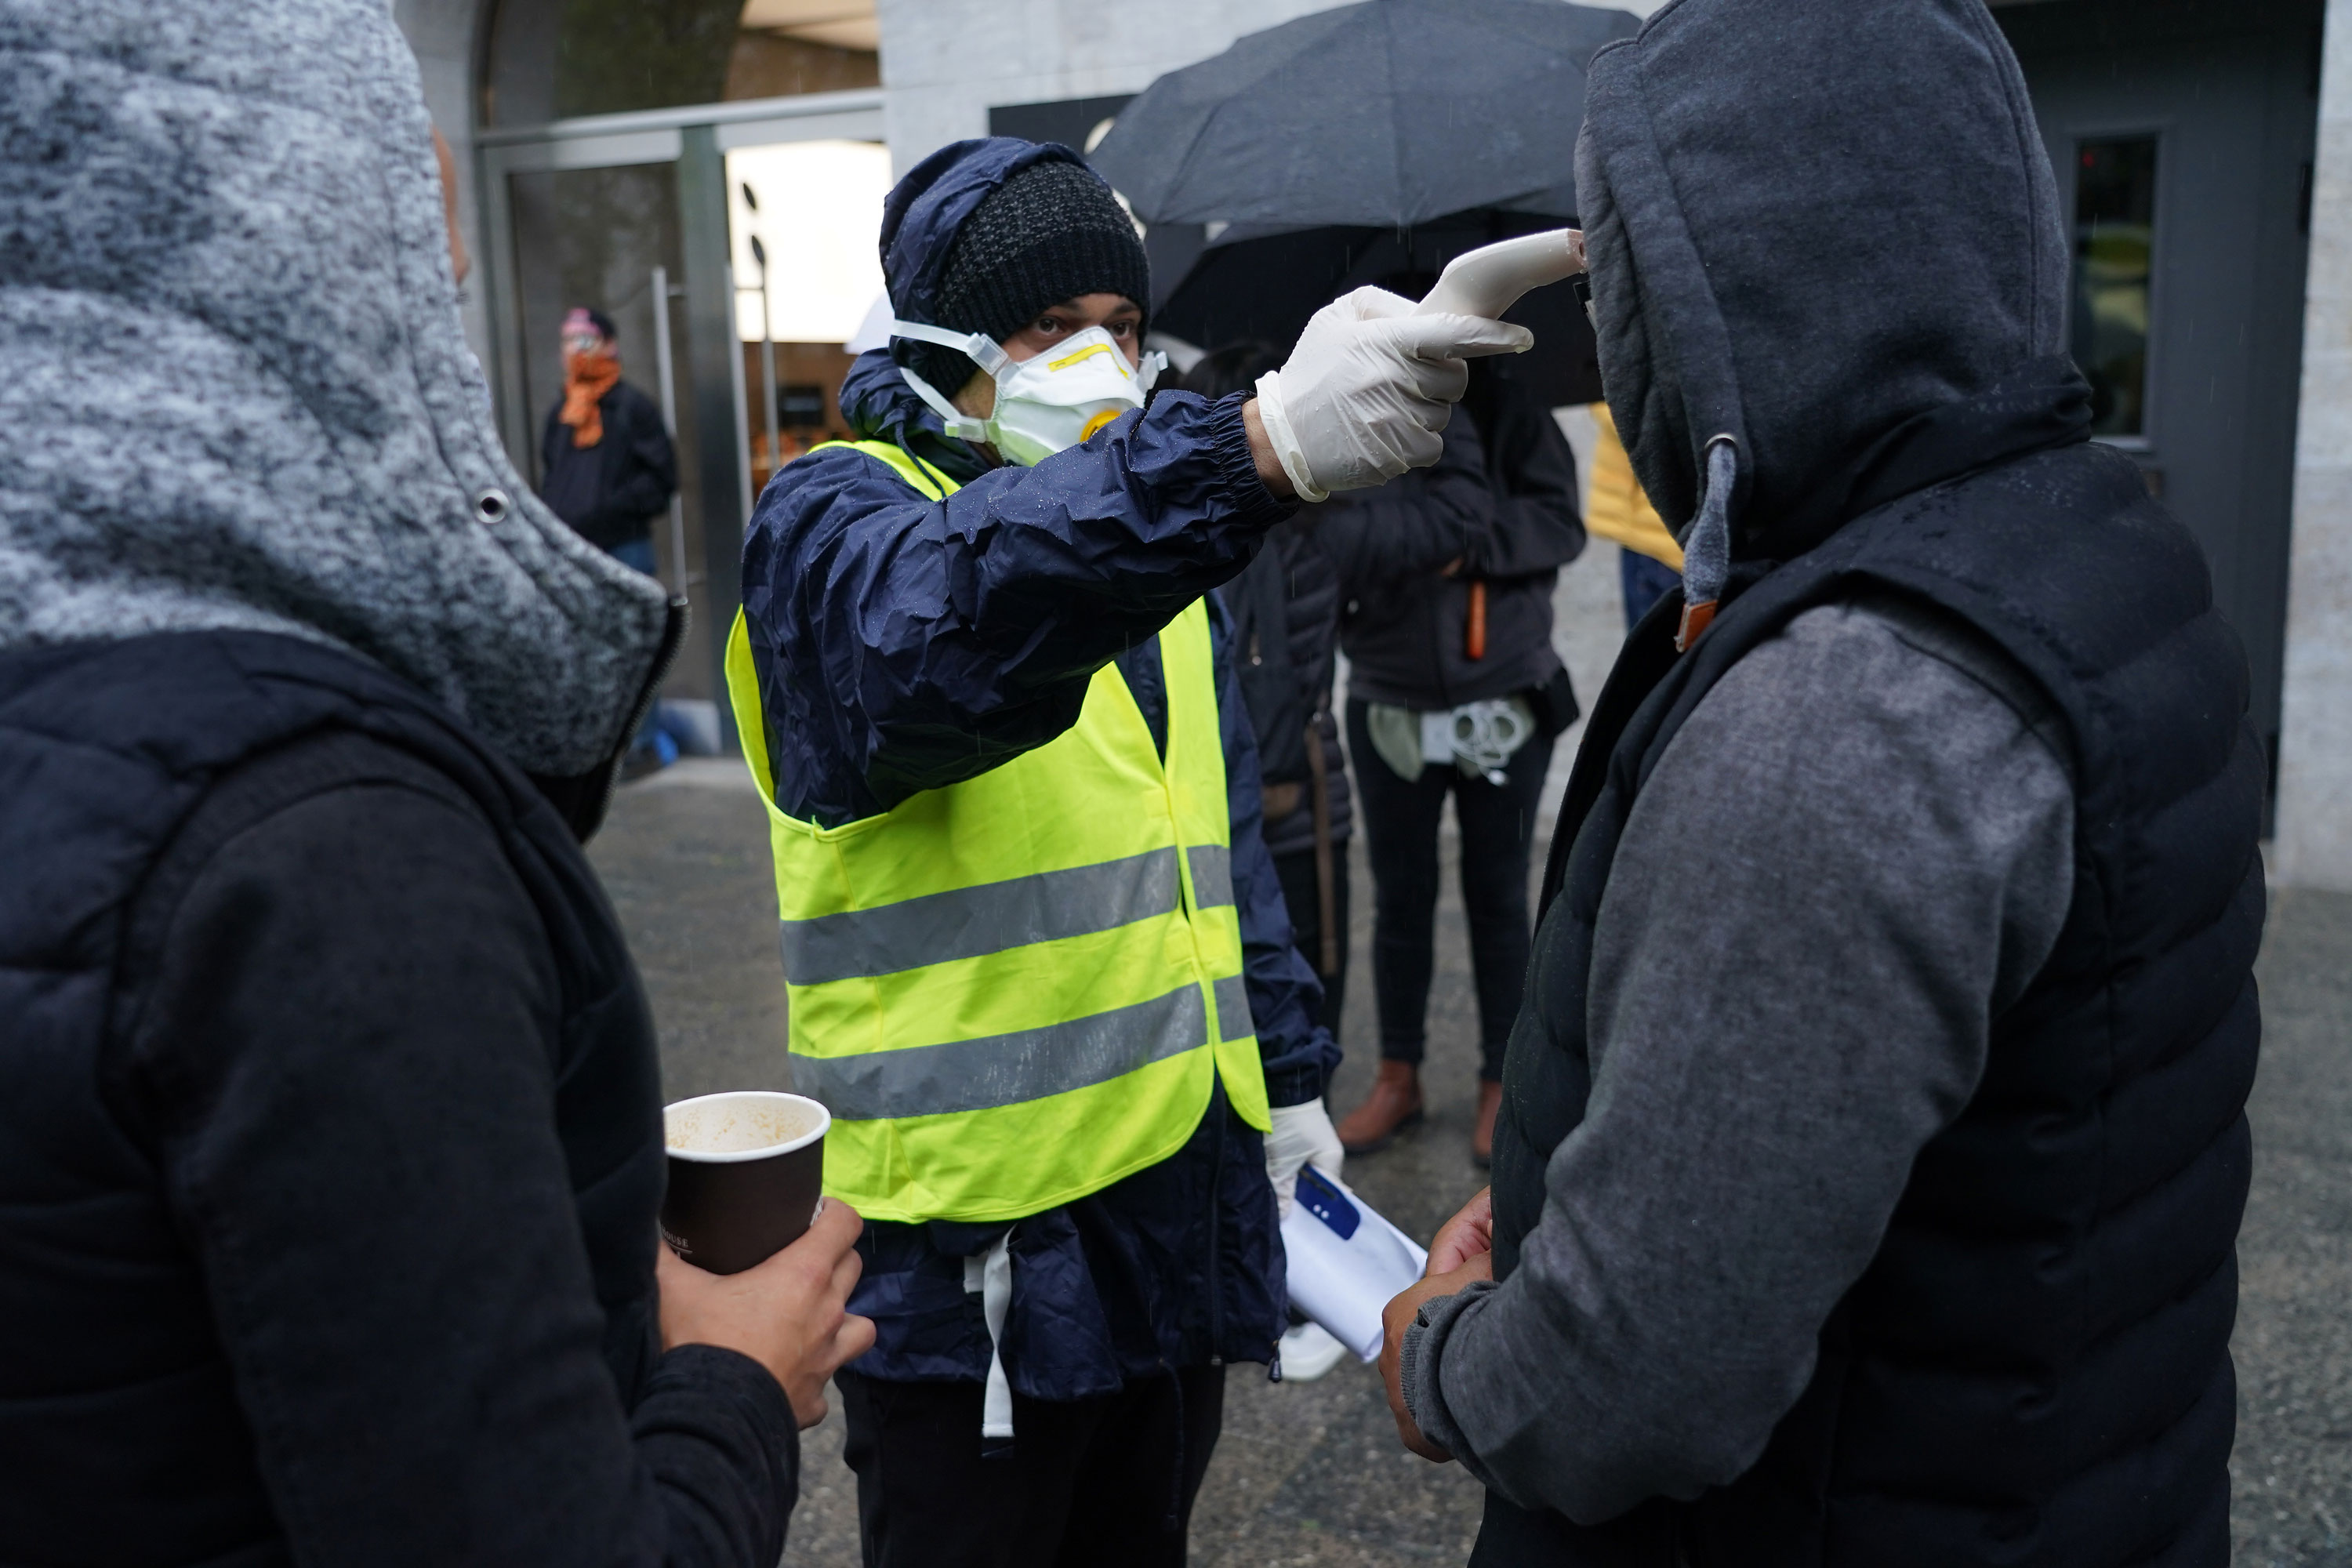 A security guard checks the body temperature of a customer on May 11 in Berlin.